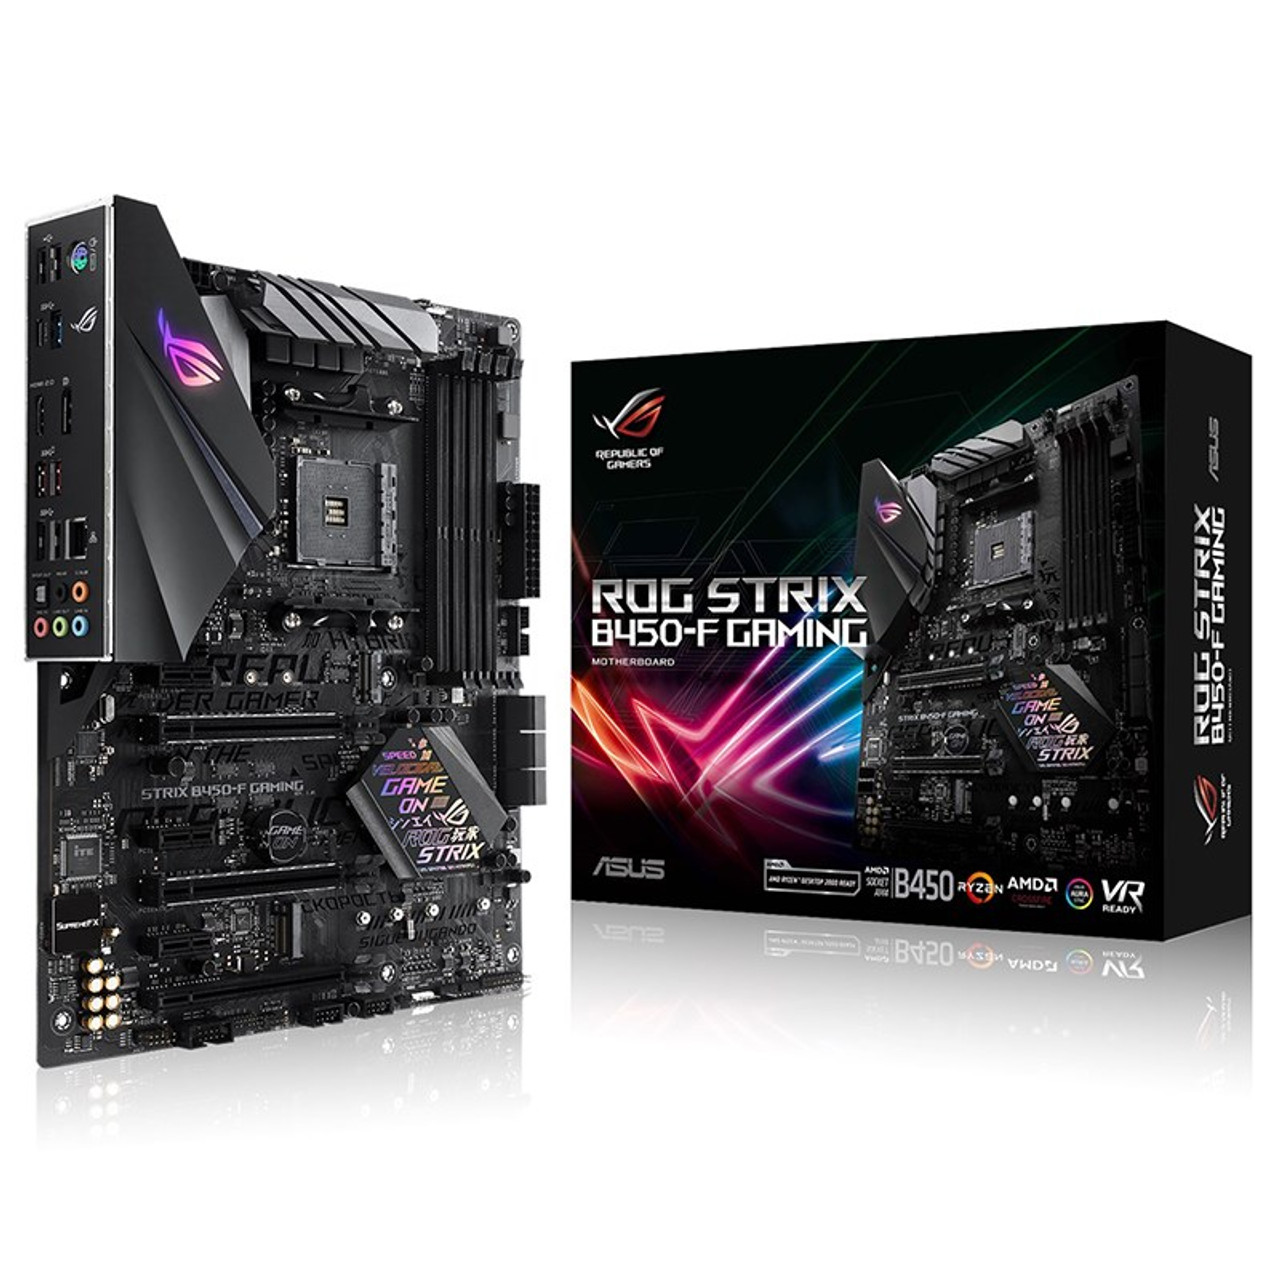 Image for Asus ROG Strix B450-F GAMING AM4 ATX Motherboard CX Computer Superstore